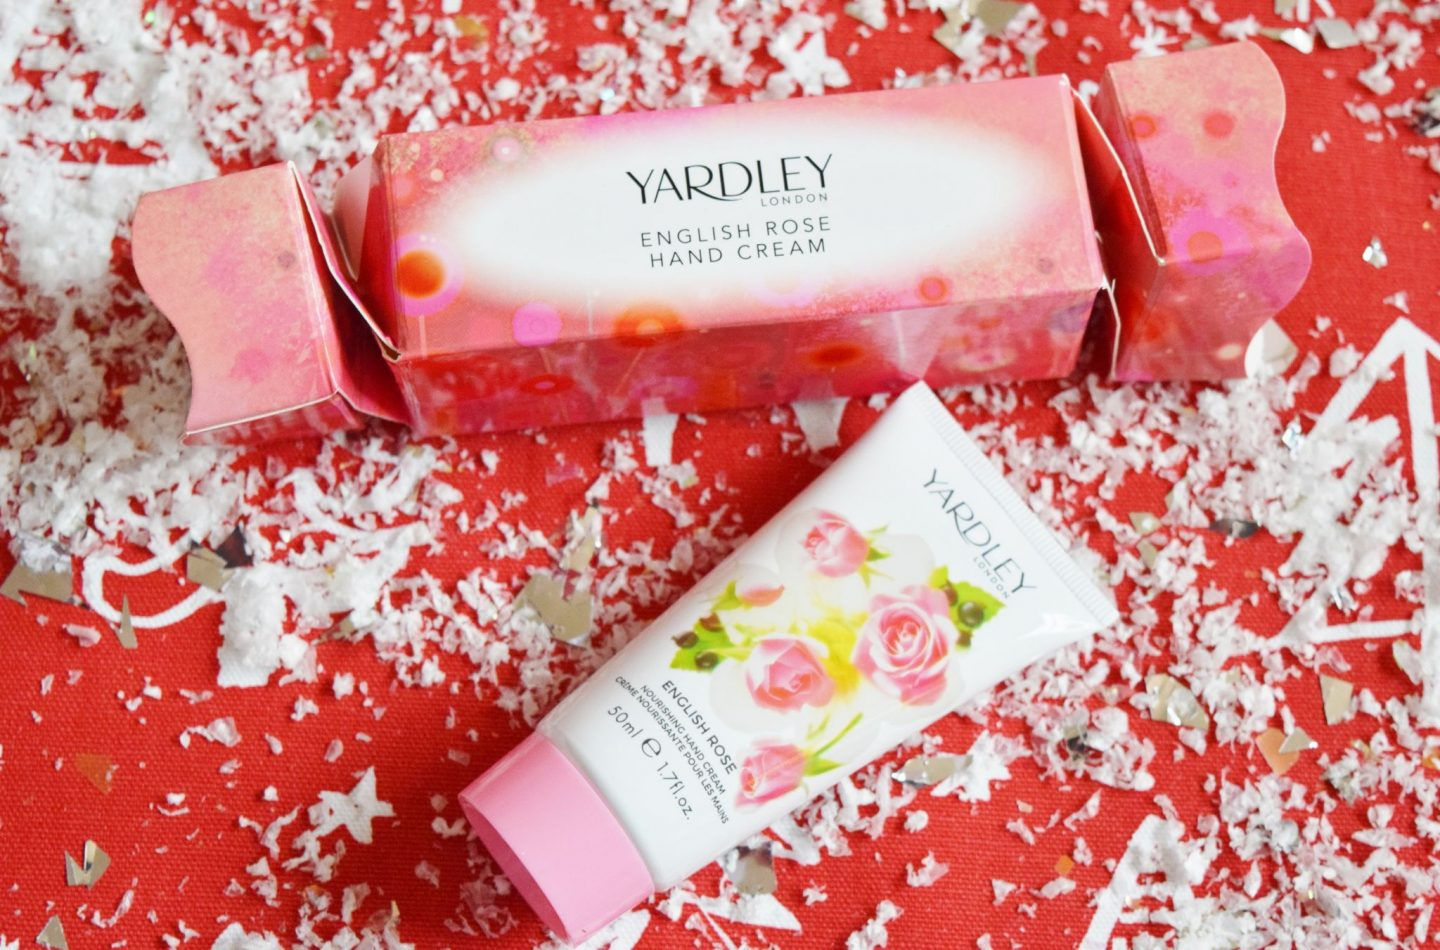 Yardley English Rose Cracker